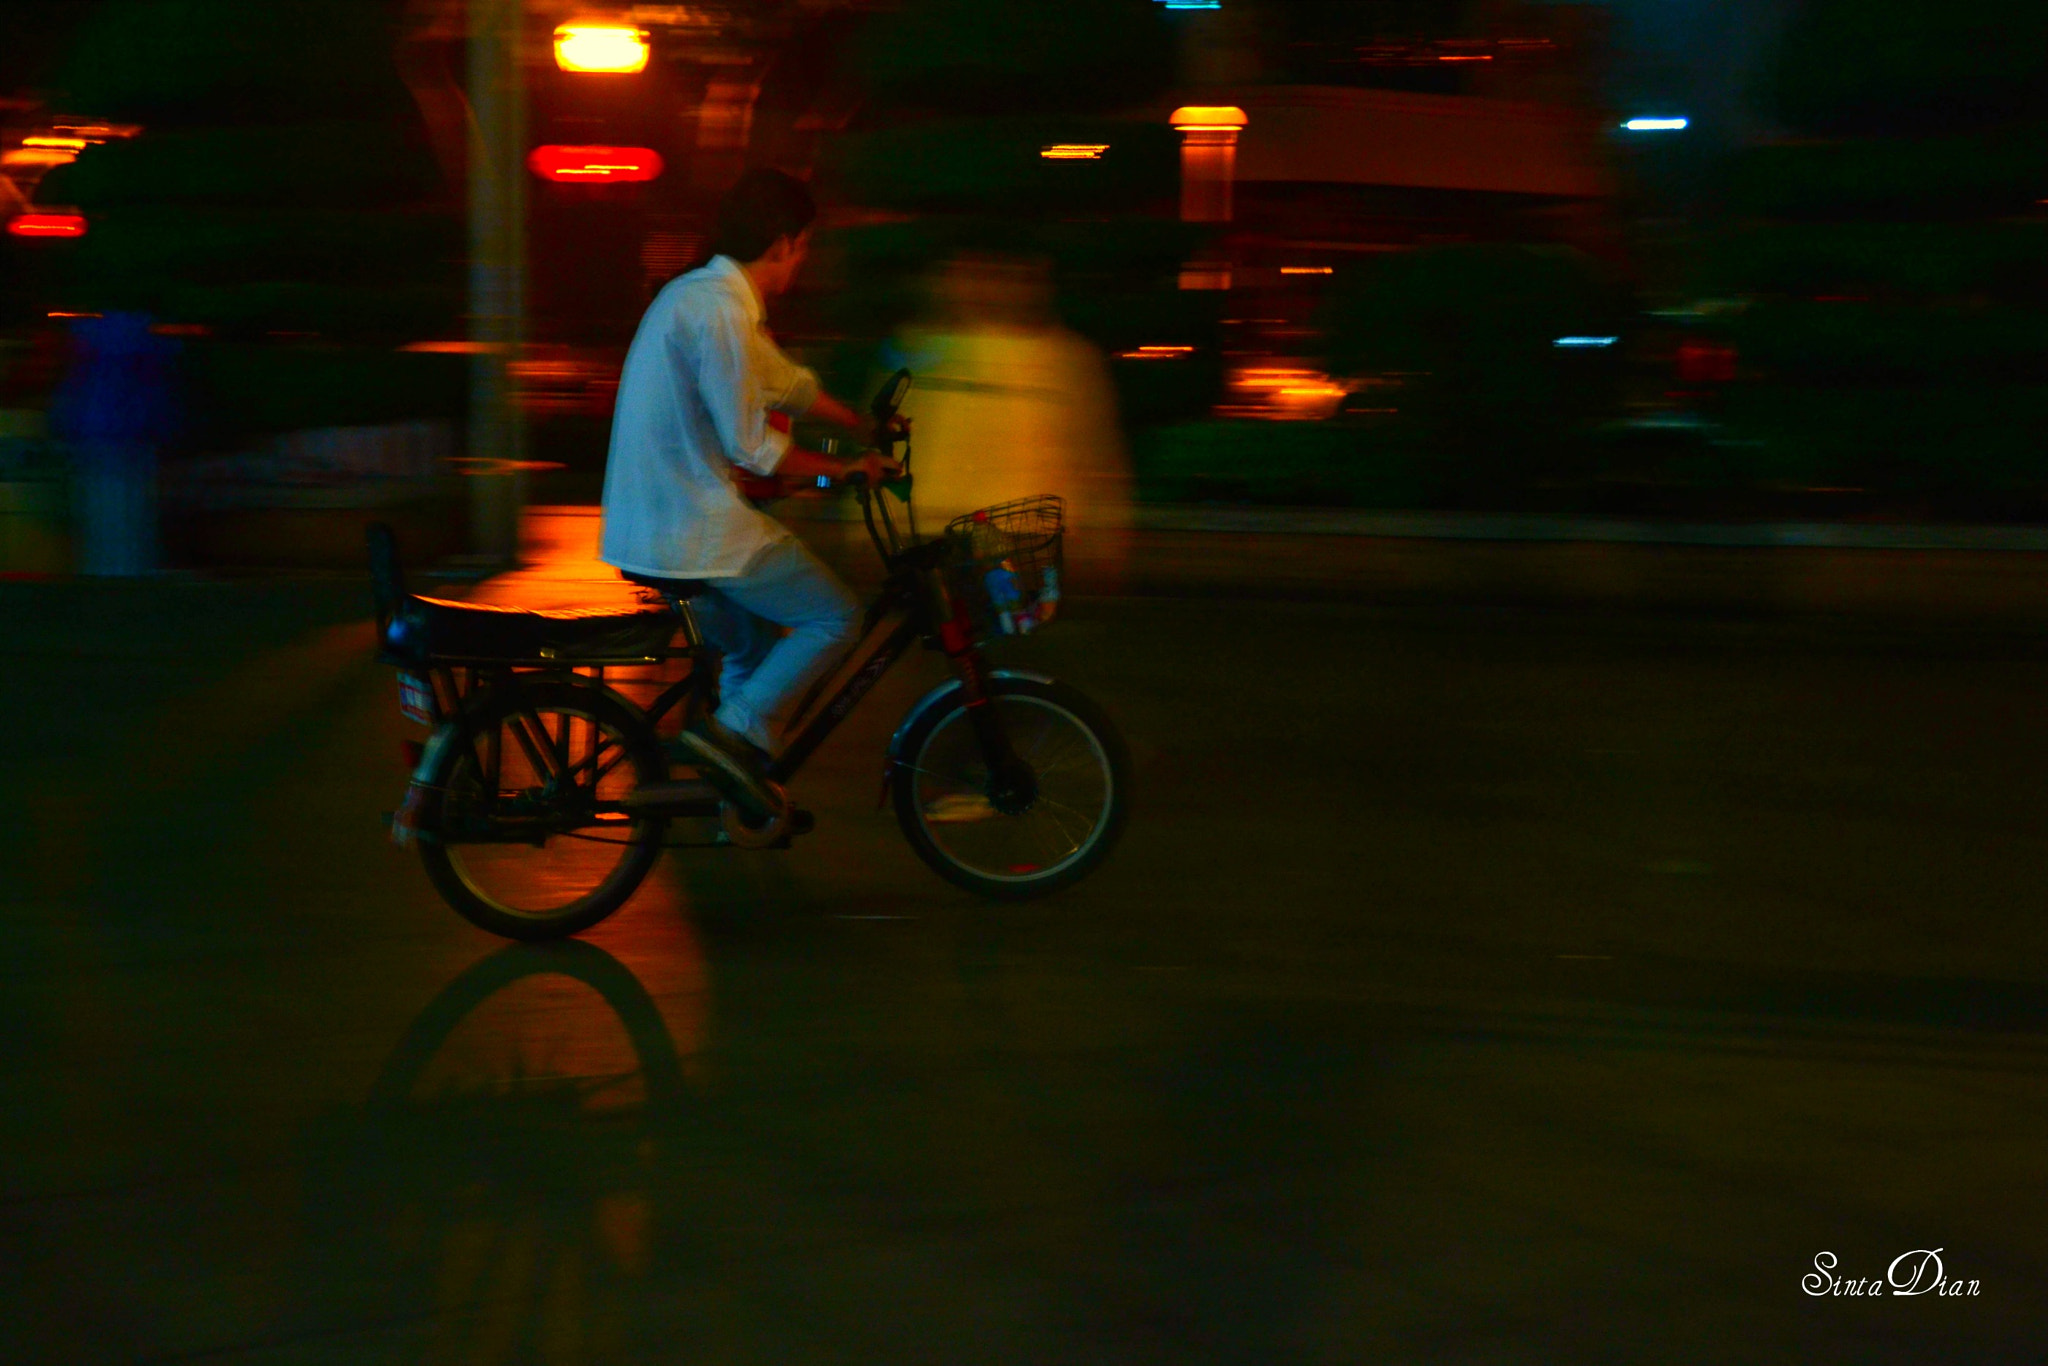 Photograph street of dongguan by Sinta Dian on 500px